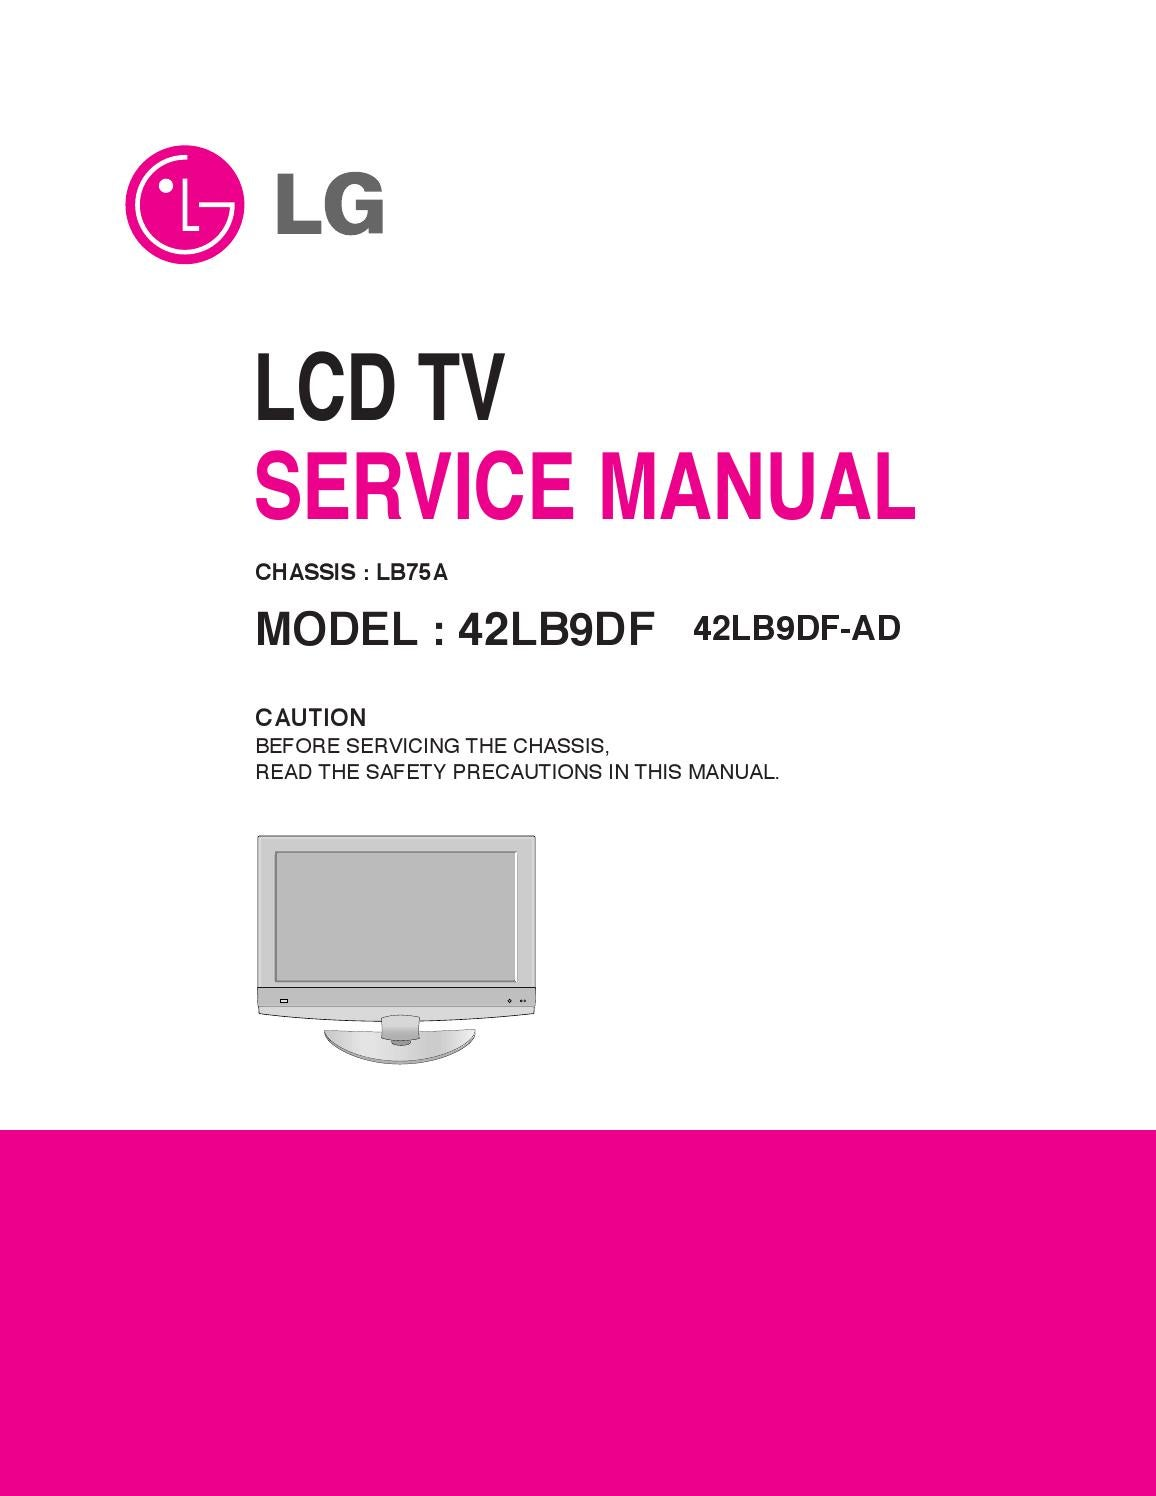 Manual De Servio Televisor Lg Modelo 42lb9df Ad Chassis Lb75a By Electro Help 32 Inch Philips Lcd Tv Power Supply Smps Schematic Portal Da Eletrnica Issuu